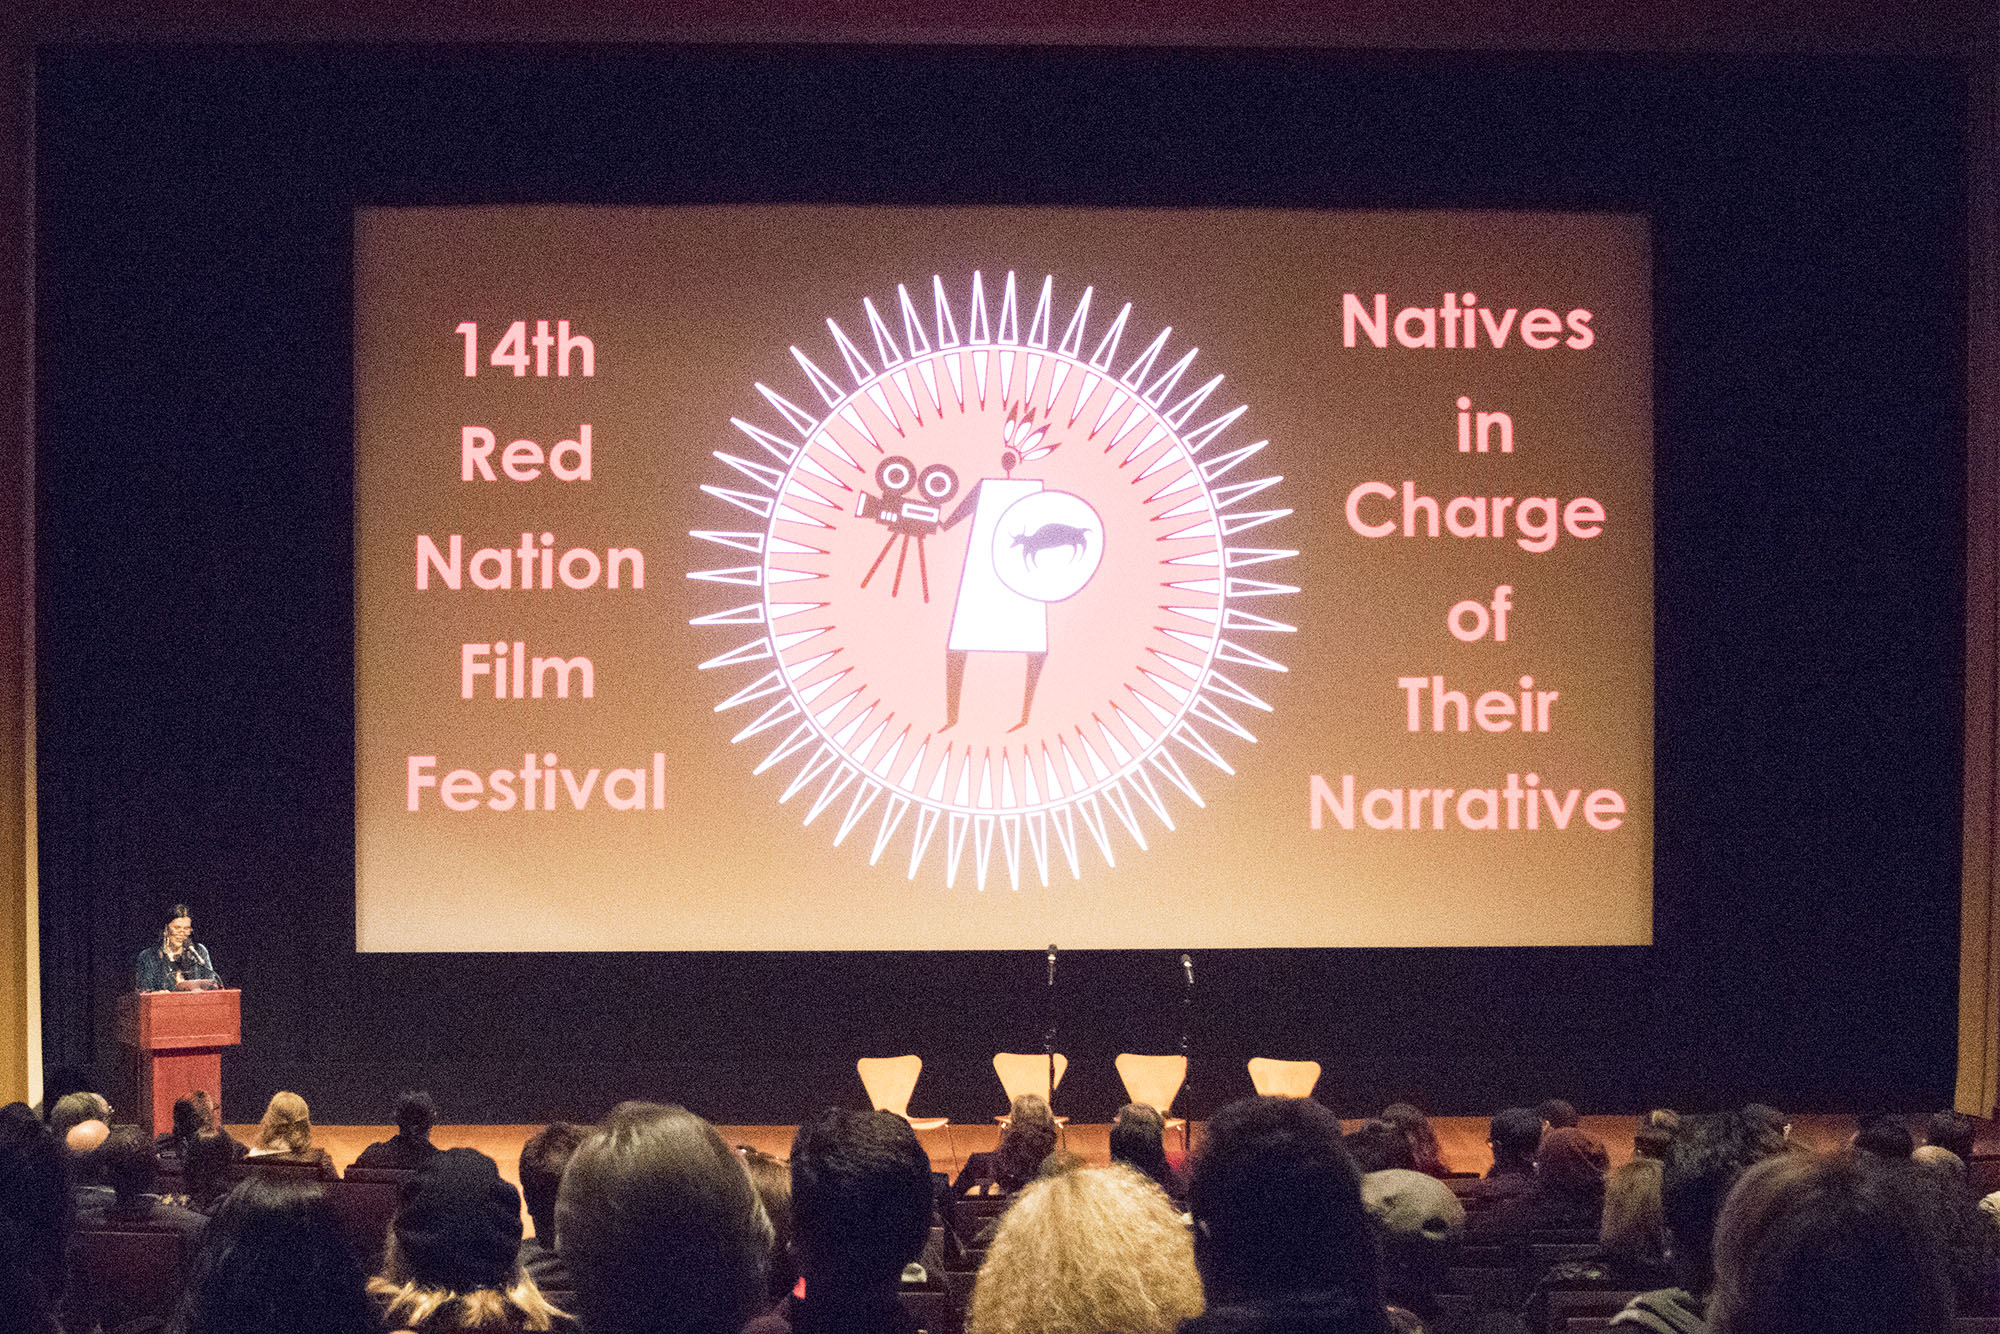 "Red Nation Film Festival -NATIVES IN CHARGE OF THEIR NARRATIVE on Friday, November 10, 2017 at Linwood Dunn Theatre, Hollywood, CA. World Premiere of ""Women in the Sand""."